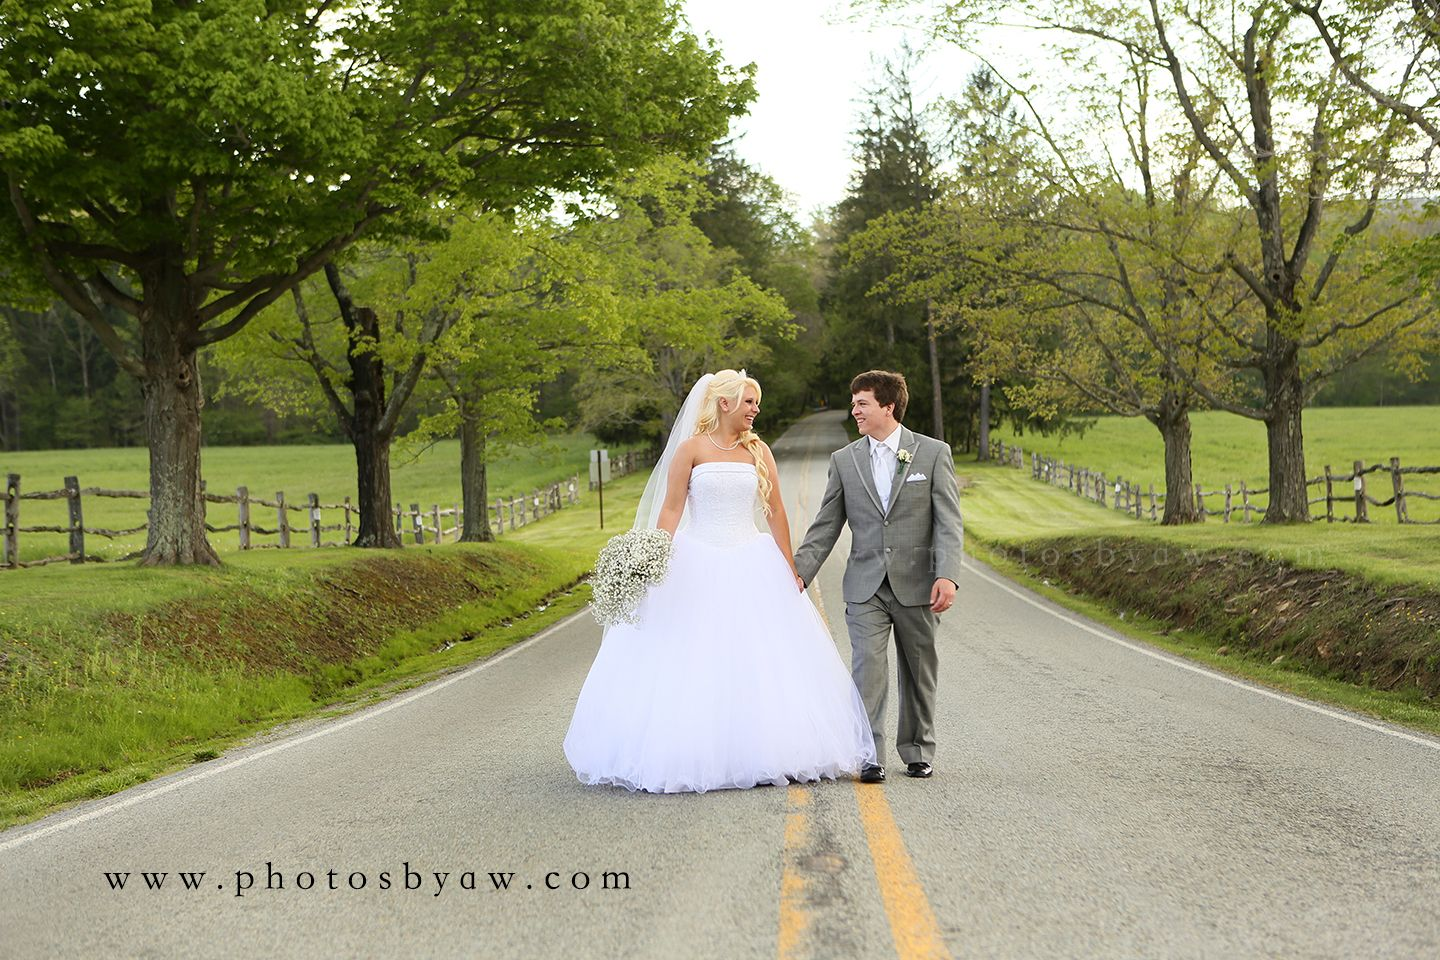 Country wedding in Ligonier, PA - Photography by Amanda Wilson www.photosbyaw.com